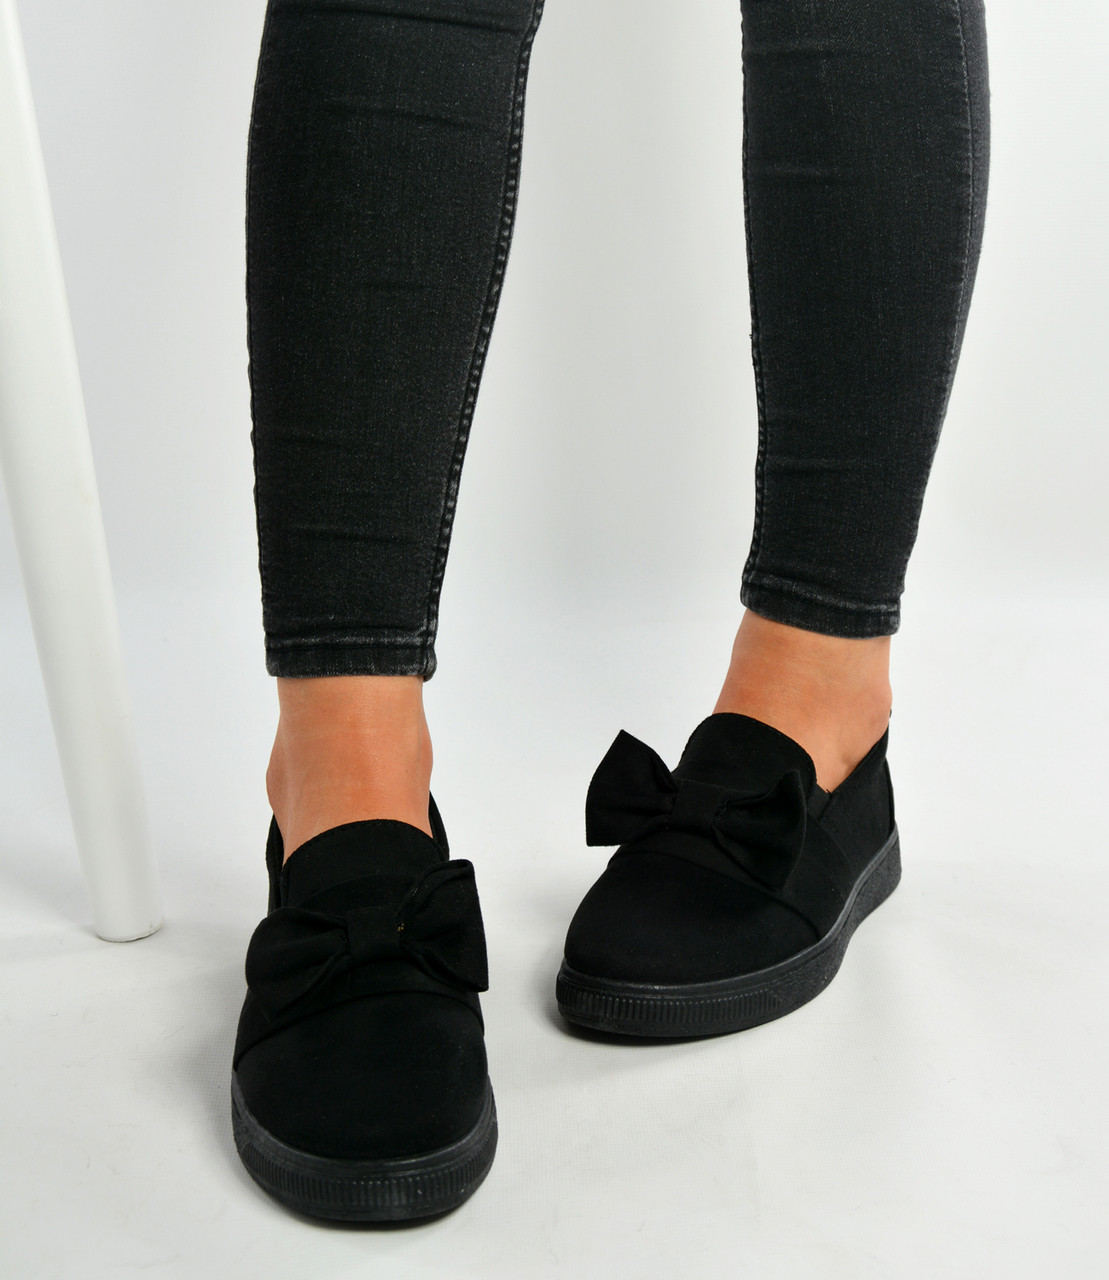 142f7b9b5798b New Womens Ladies Black Bow Sneakers Trainers Shoes Size Uk 3-8